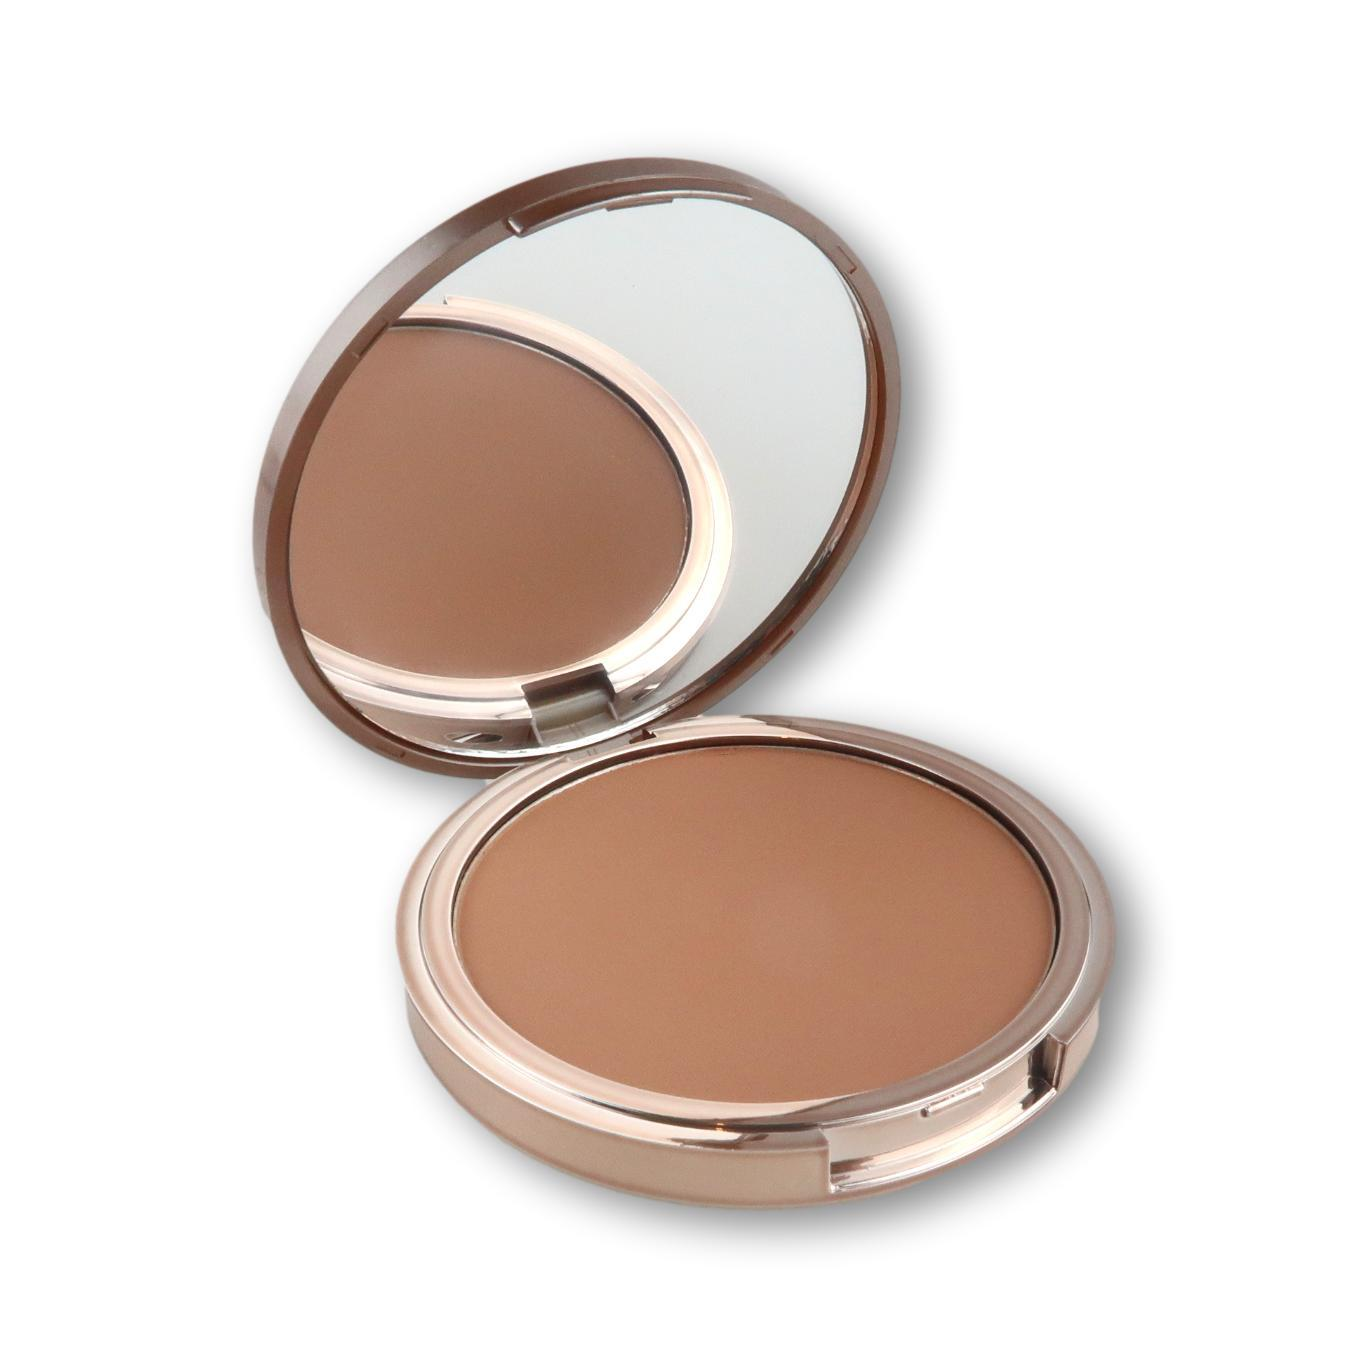 Urban DecayUrban Decay Beached Bronzer Bronzer- Beauty Full Time